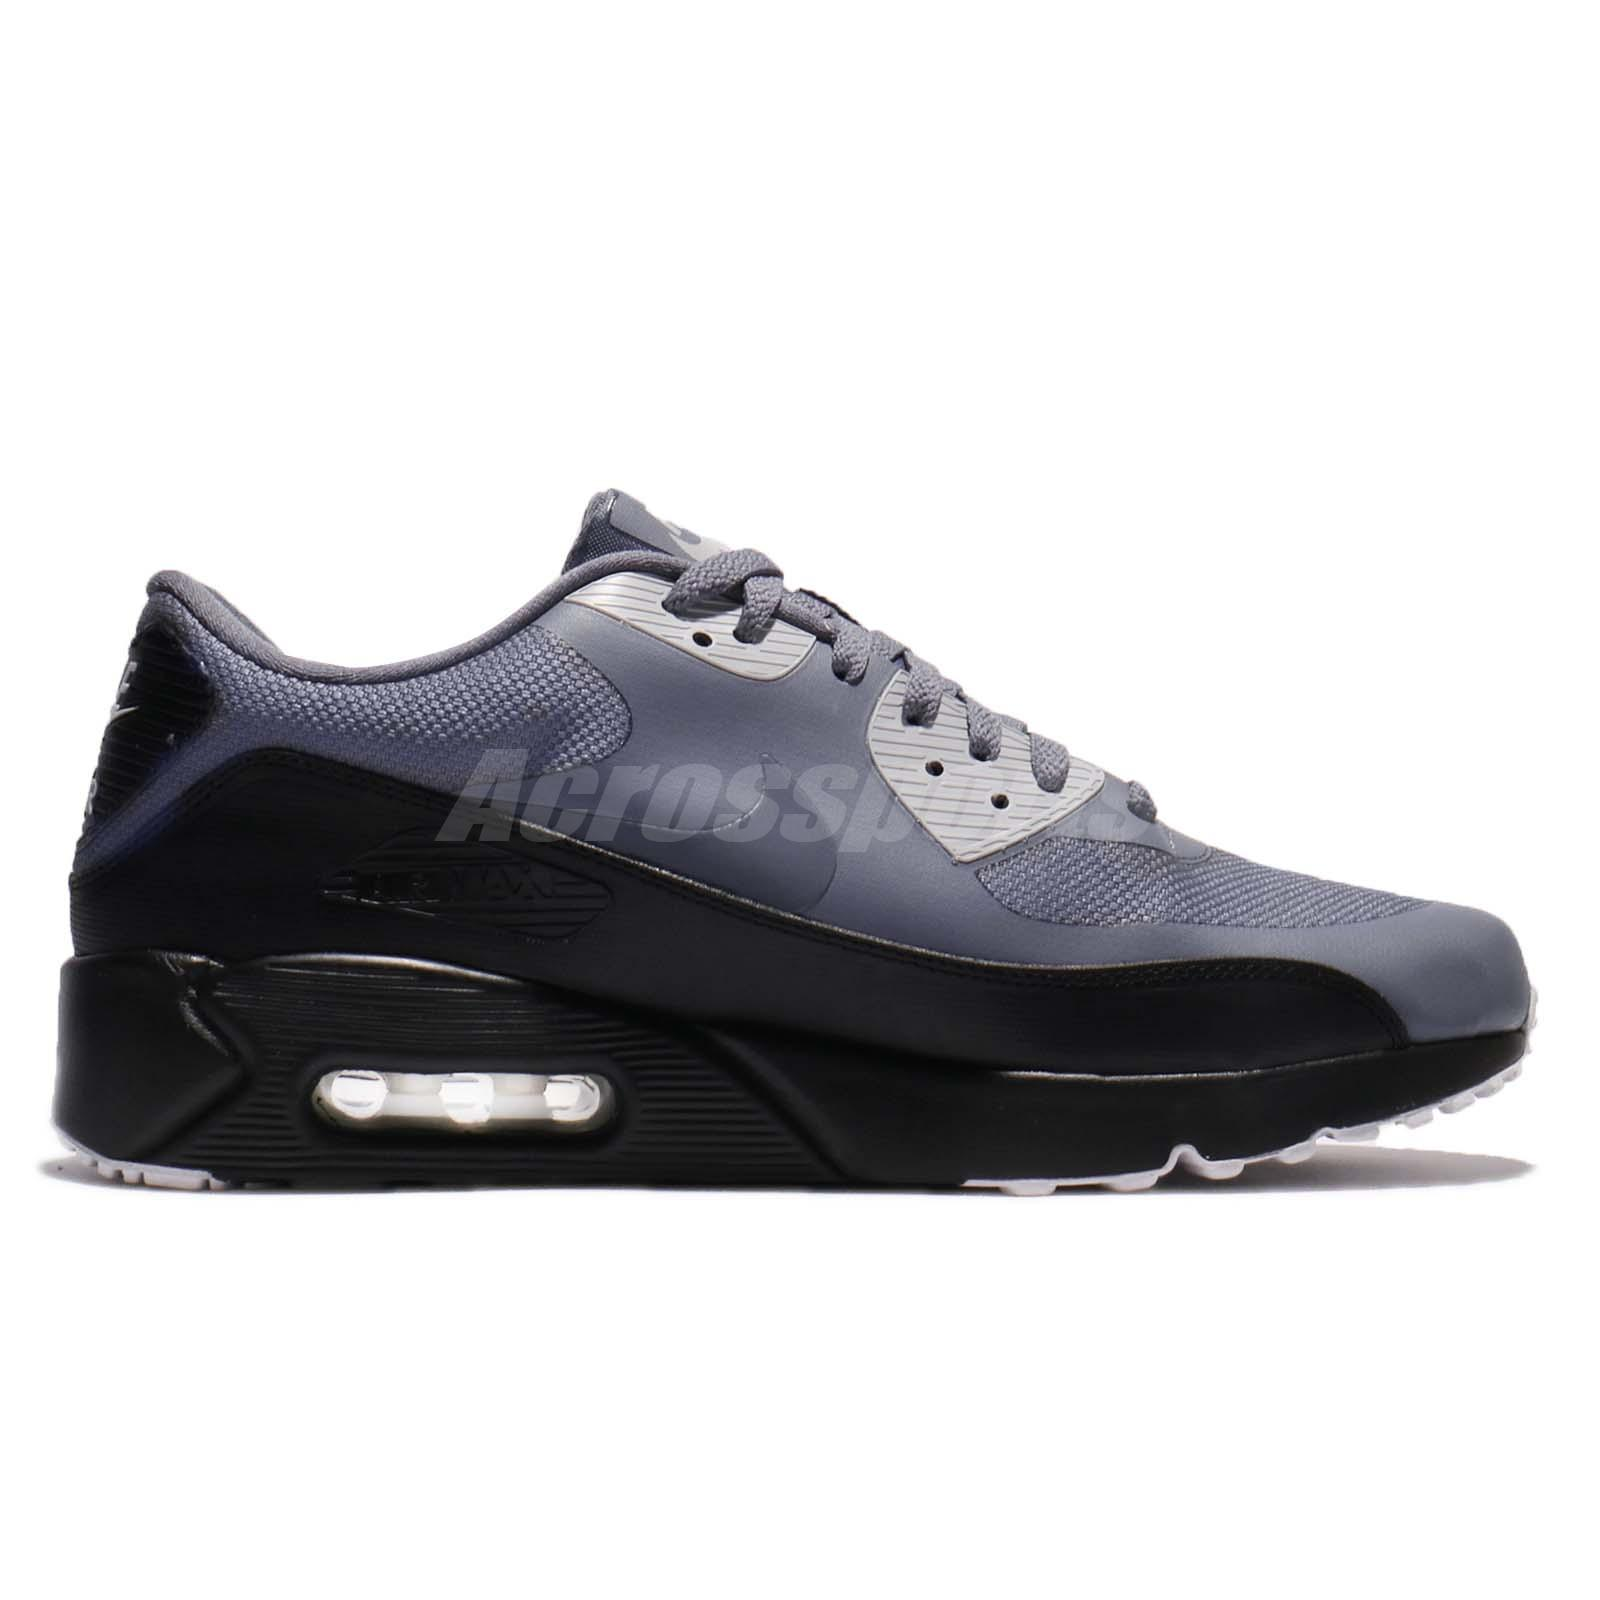 Details about Nike Air Max 90 Ultra 2.0 Essential Light Carbon Grey Men Shoes 875695 012